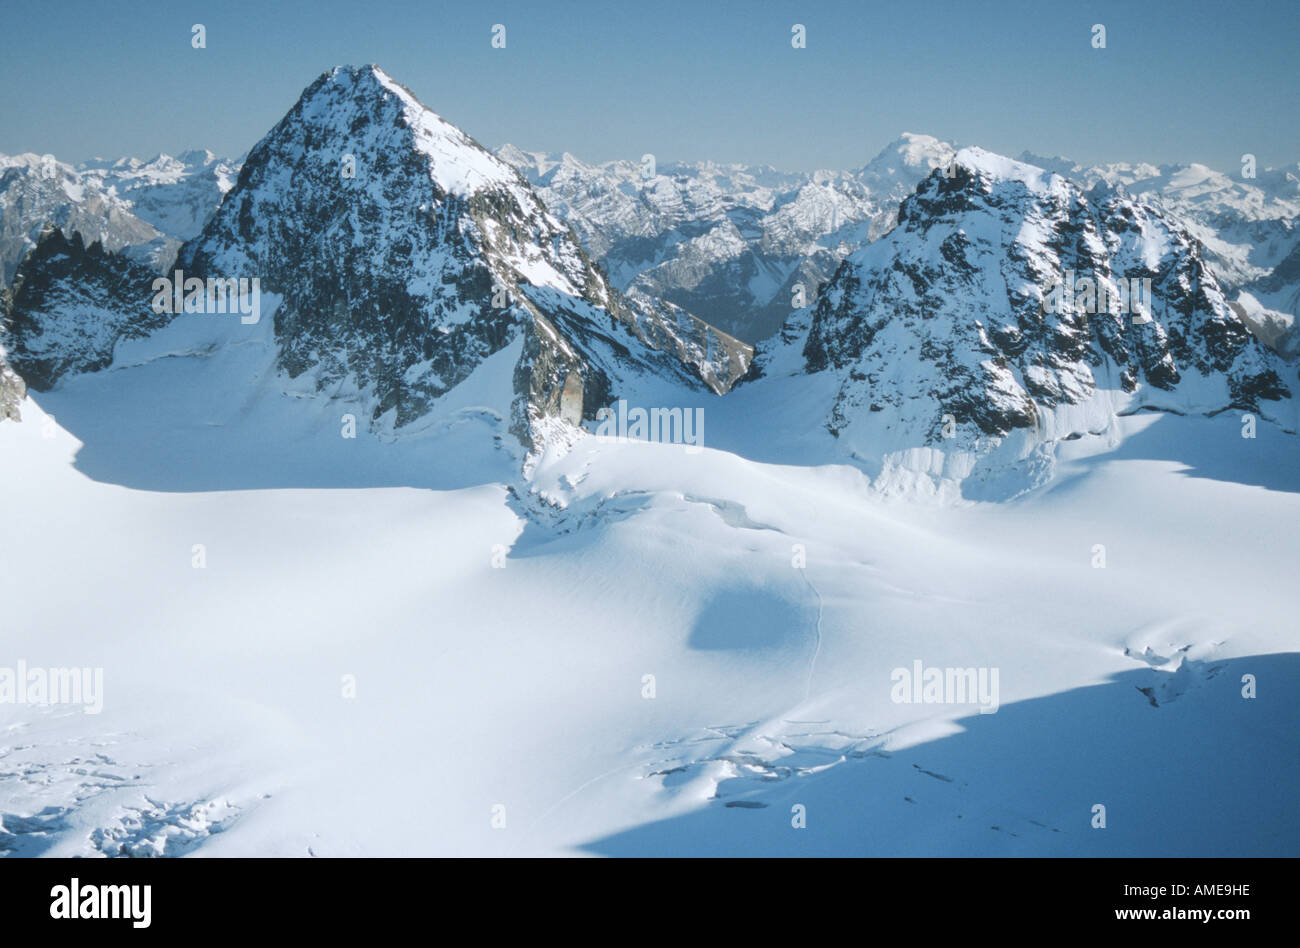 piz buin and kleiner piz buin austria vorarlberg stock photo royalty free image 8707293 alamy. Black Bedroom Furniture Sets. Home Design Ideas